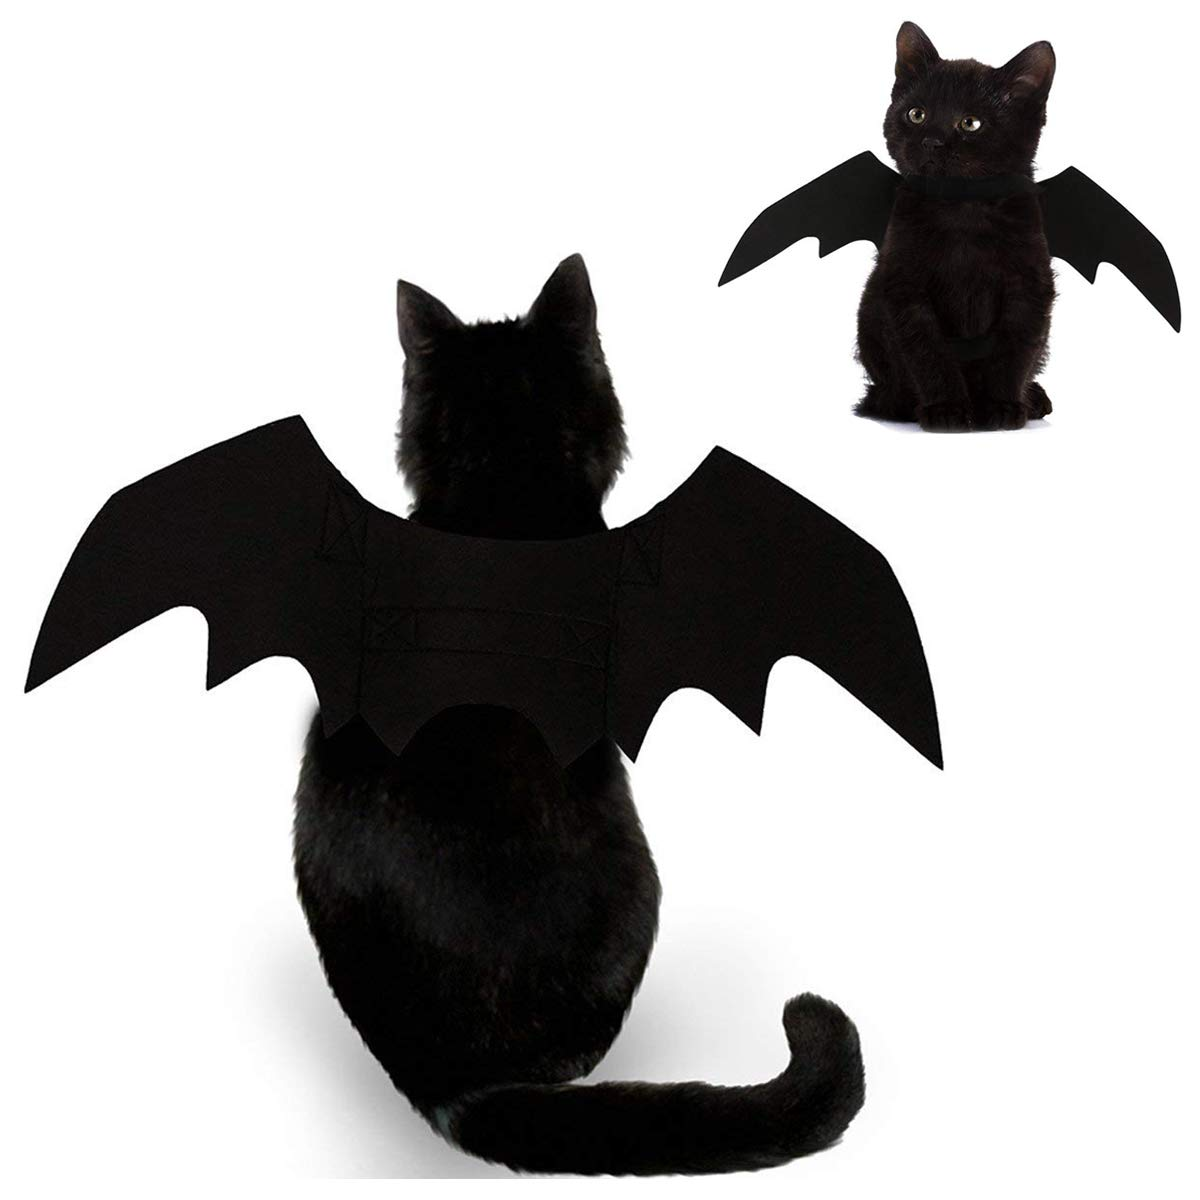 Foogles Cat Halloween Costume - Black Cat Bat Wings Cosplay - Pet Costumes Apparel for Cat Small Dogs Puppy - Cat Collar Leads Dress Up Accessories